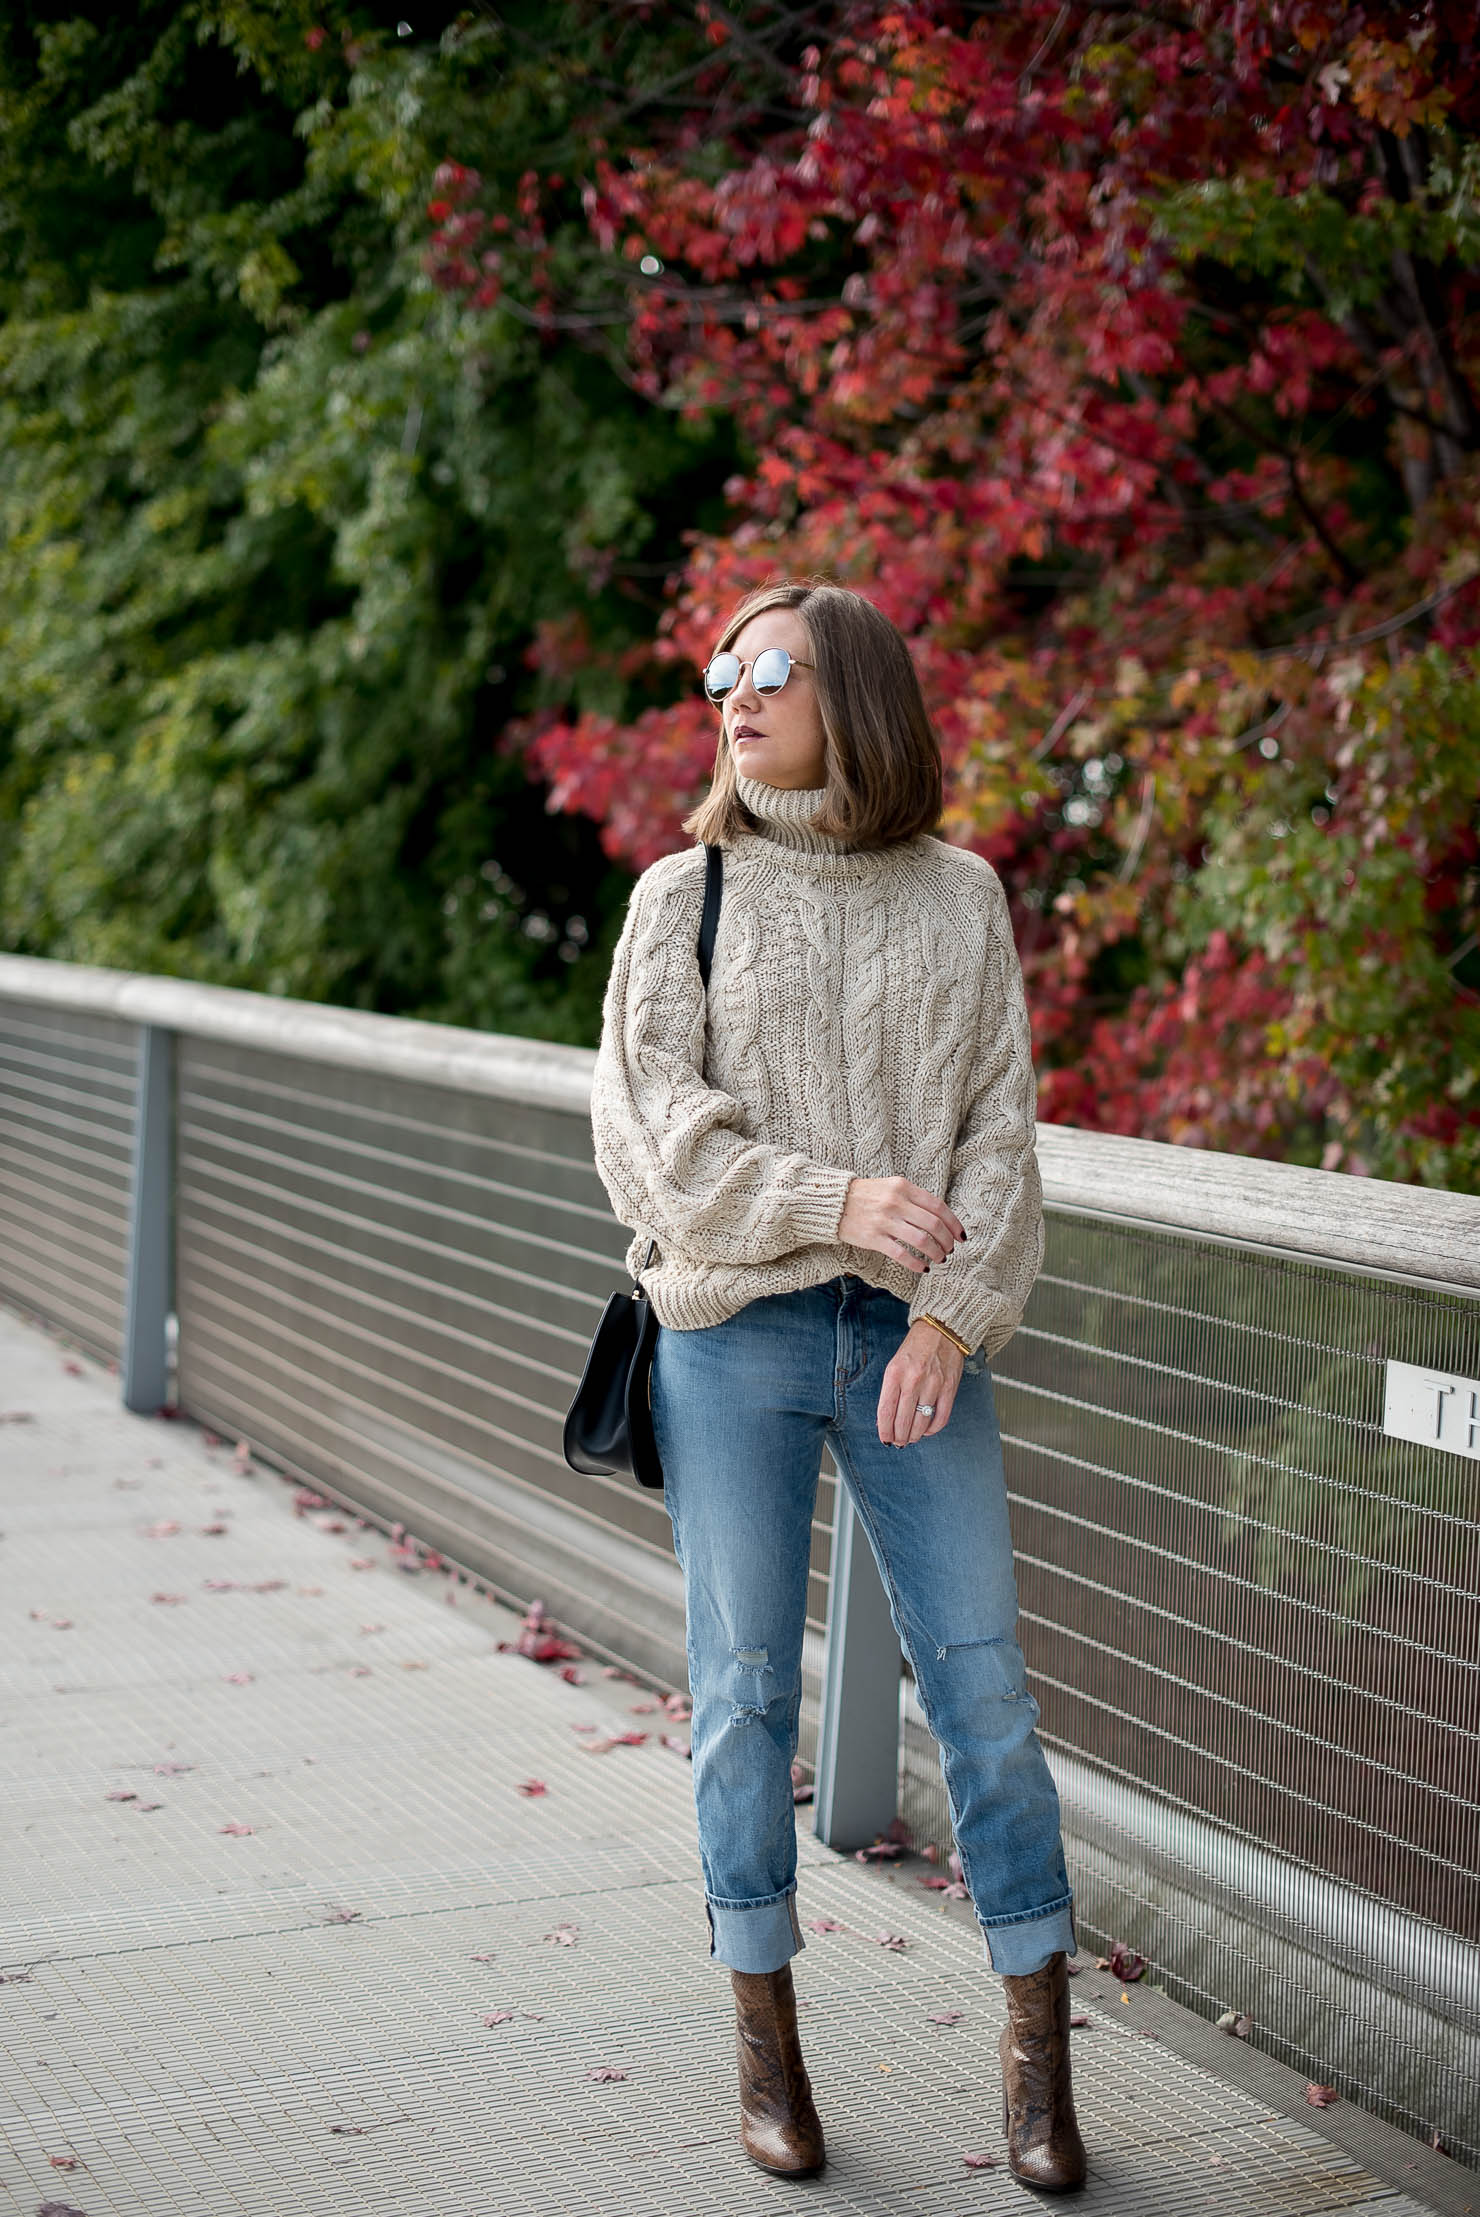 fall-in-chicago-hm-cable-oversized-turtleneck-sweater-girlfriend-jeans-snakeskin-boots-how-to-wear-over-the-ankle-boots-cozy-fall-style